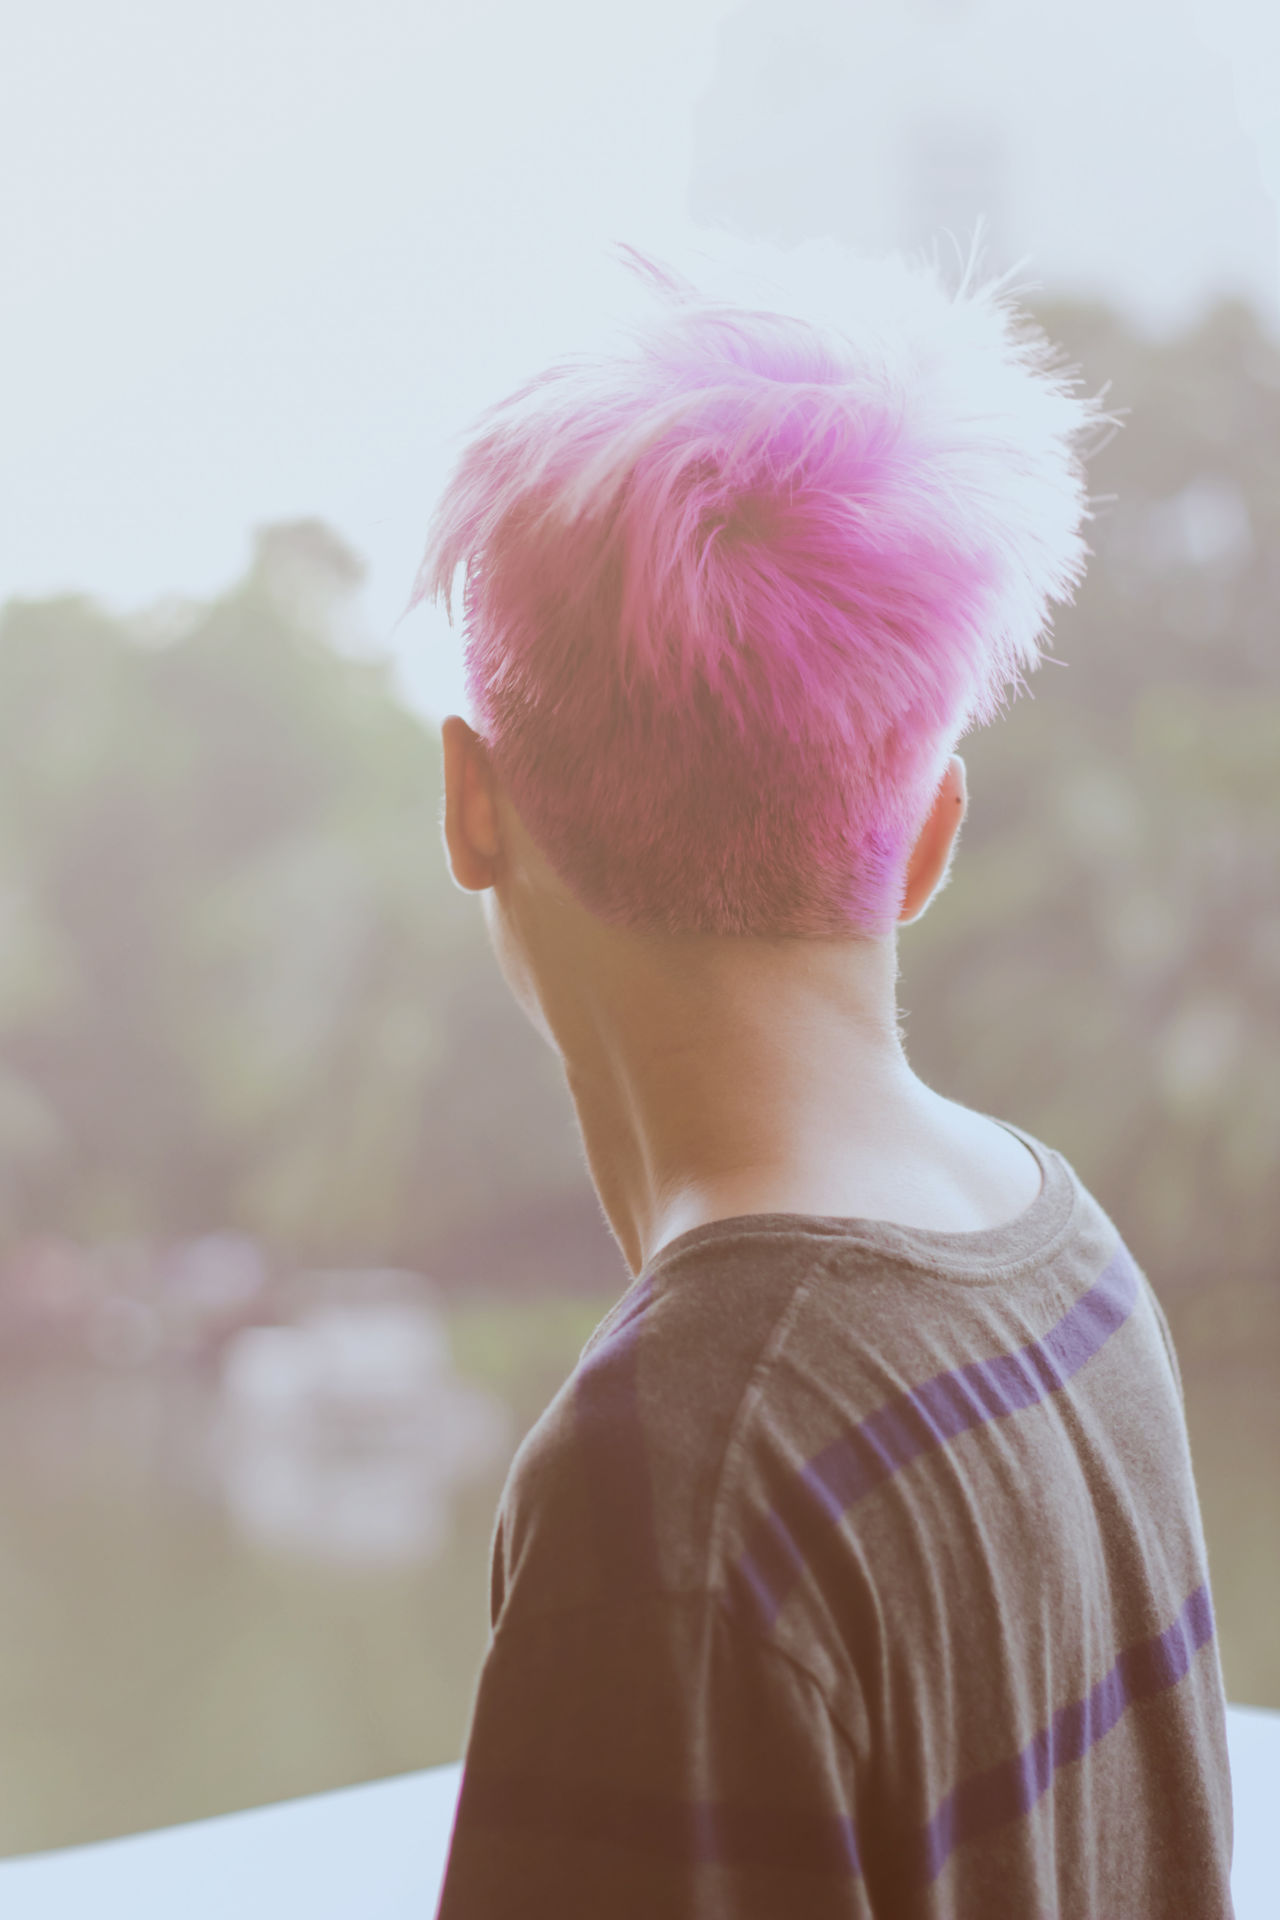 Pink hairstyle Day Fashion Hair Haircolor Hairstyle Headshot Lifestyles Men Millennial Pink One Man Only One Person Outdoors People Pink Street Style Teenager Young Adult